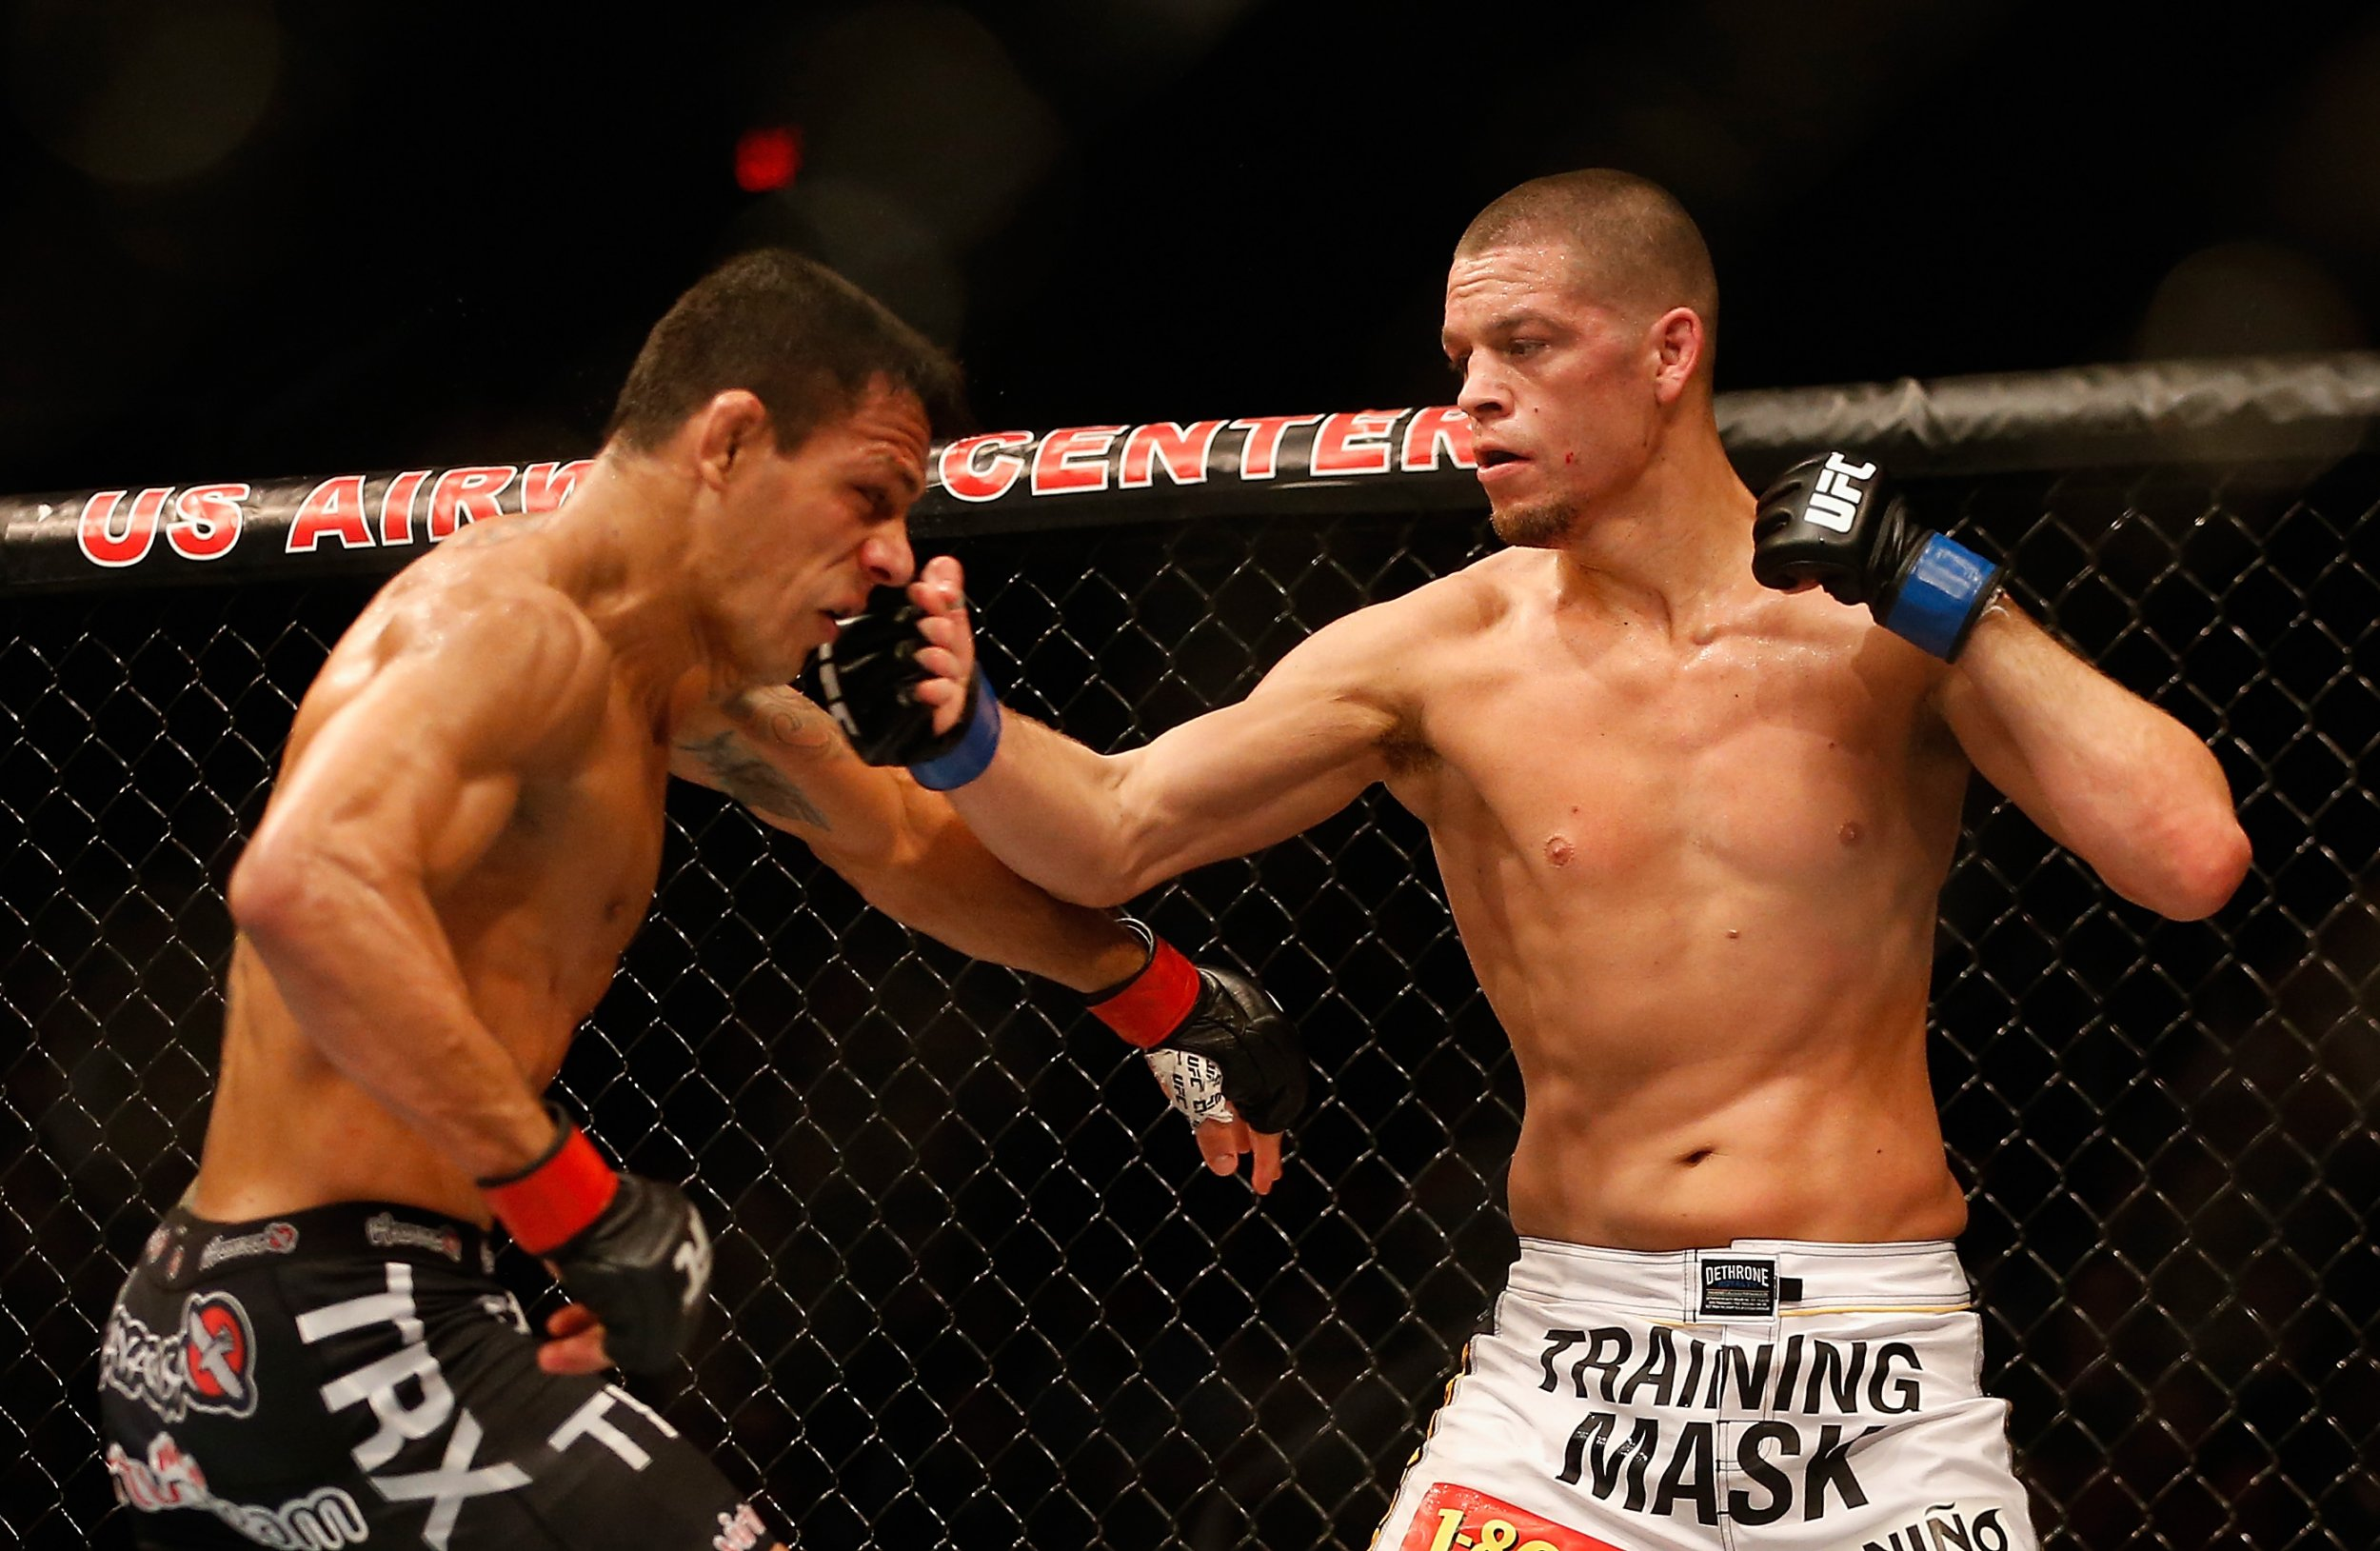 Nate Diaz, right, has stepped in to face Conor McGregor at UFC 196 in March.